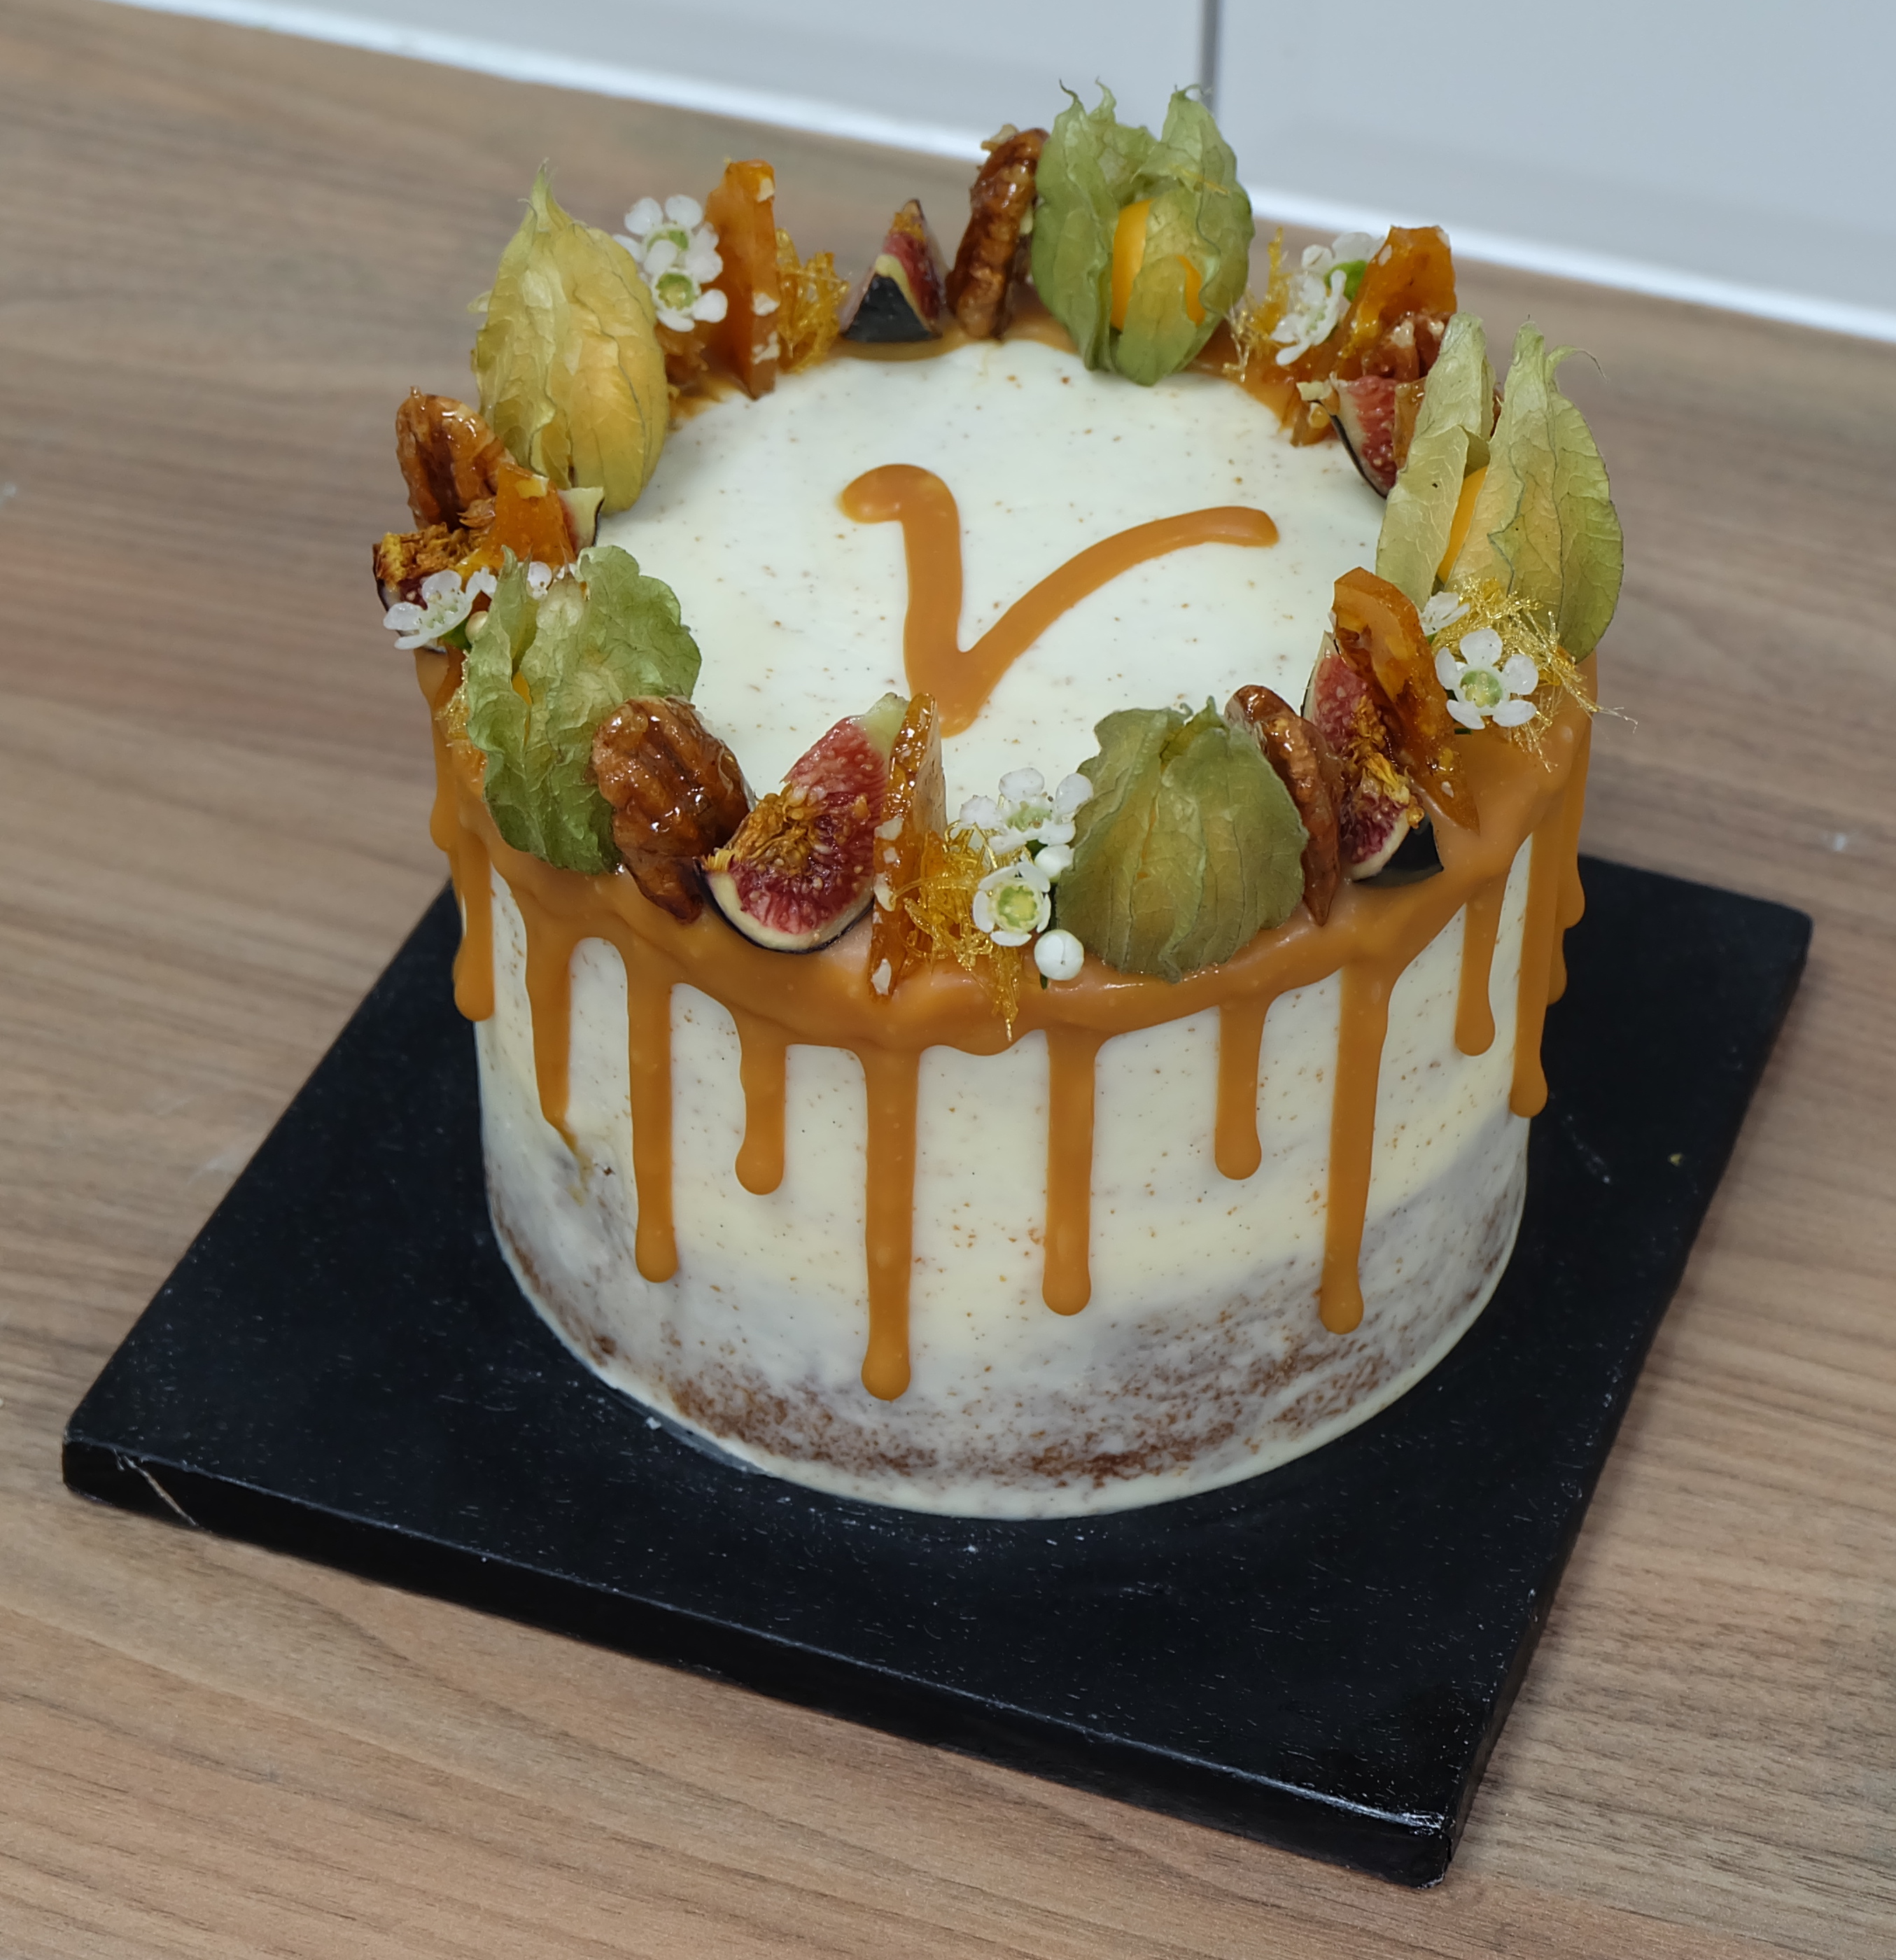 Pecan, Fruit and Caramel drip Cake  2